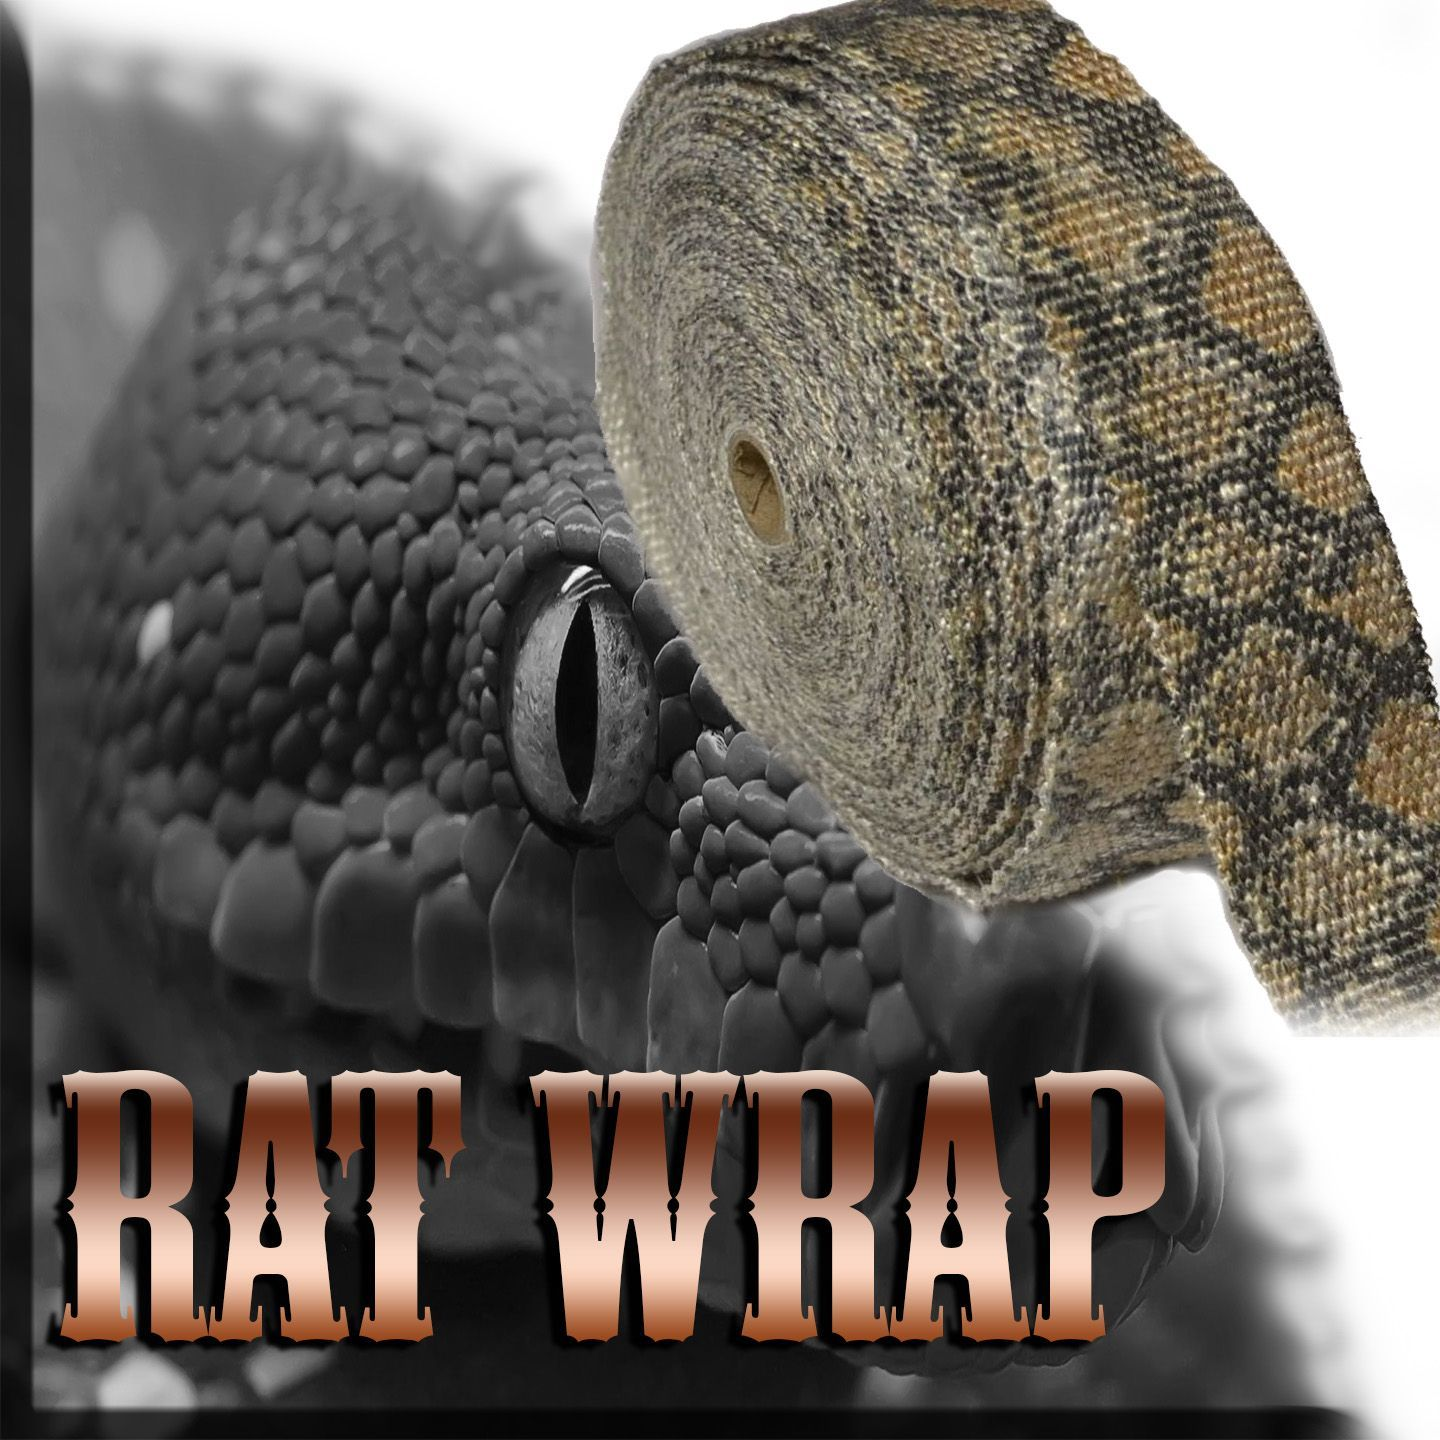 This Snakeskin Exhaust Wrap Is The Most Popular Rat Wrap